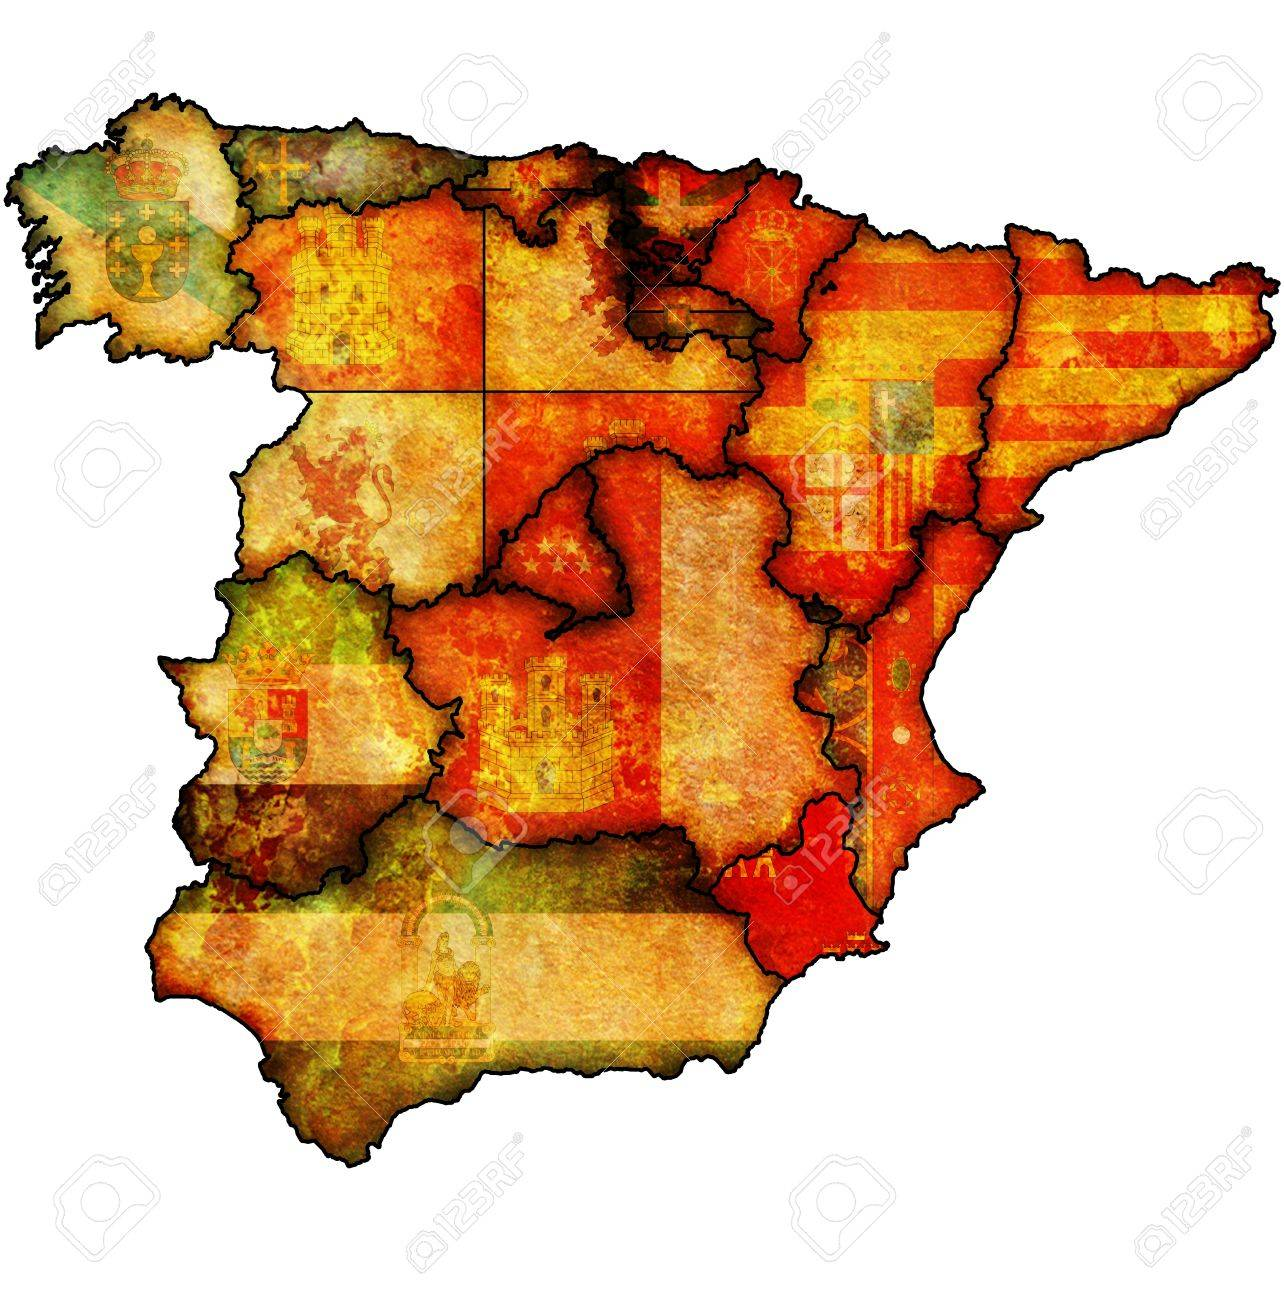 Murcia Map Of Spain.Murcia Region On Administration Map Of Regions Of Spain With